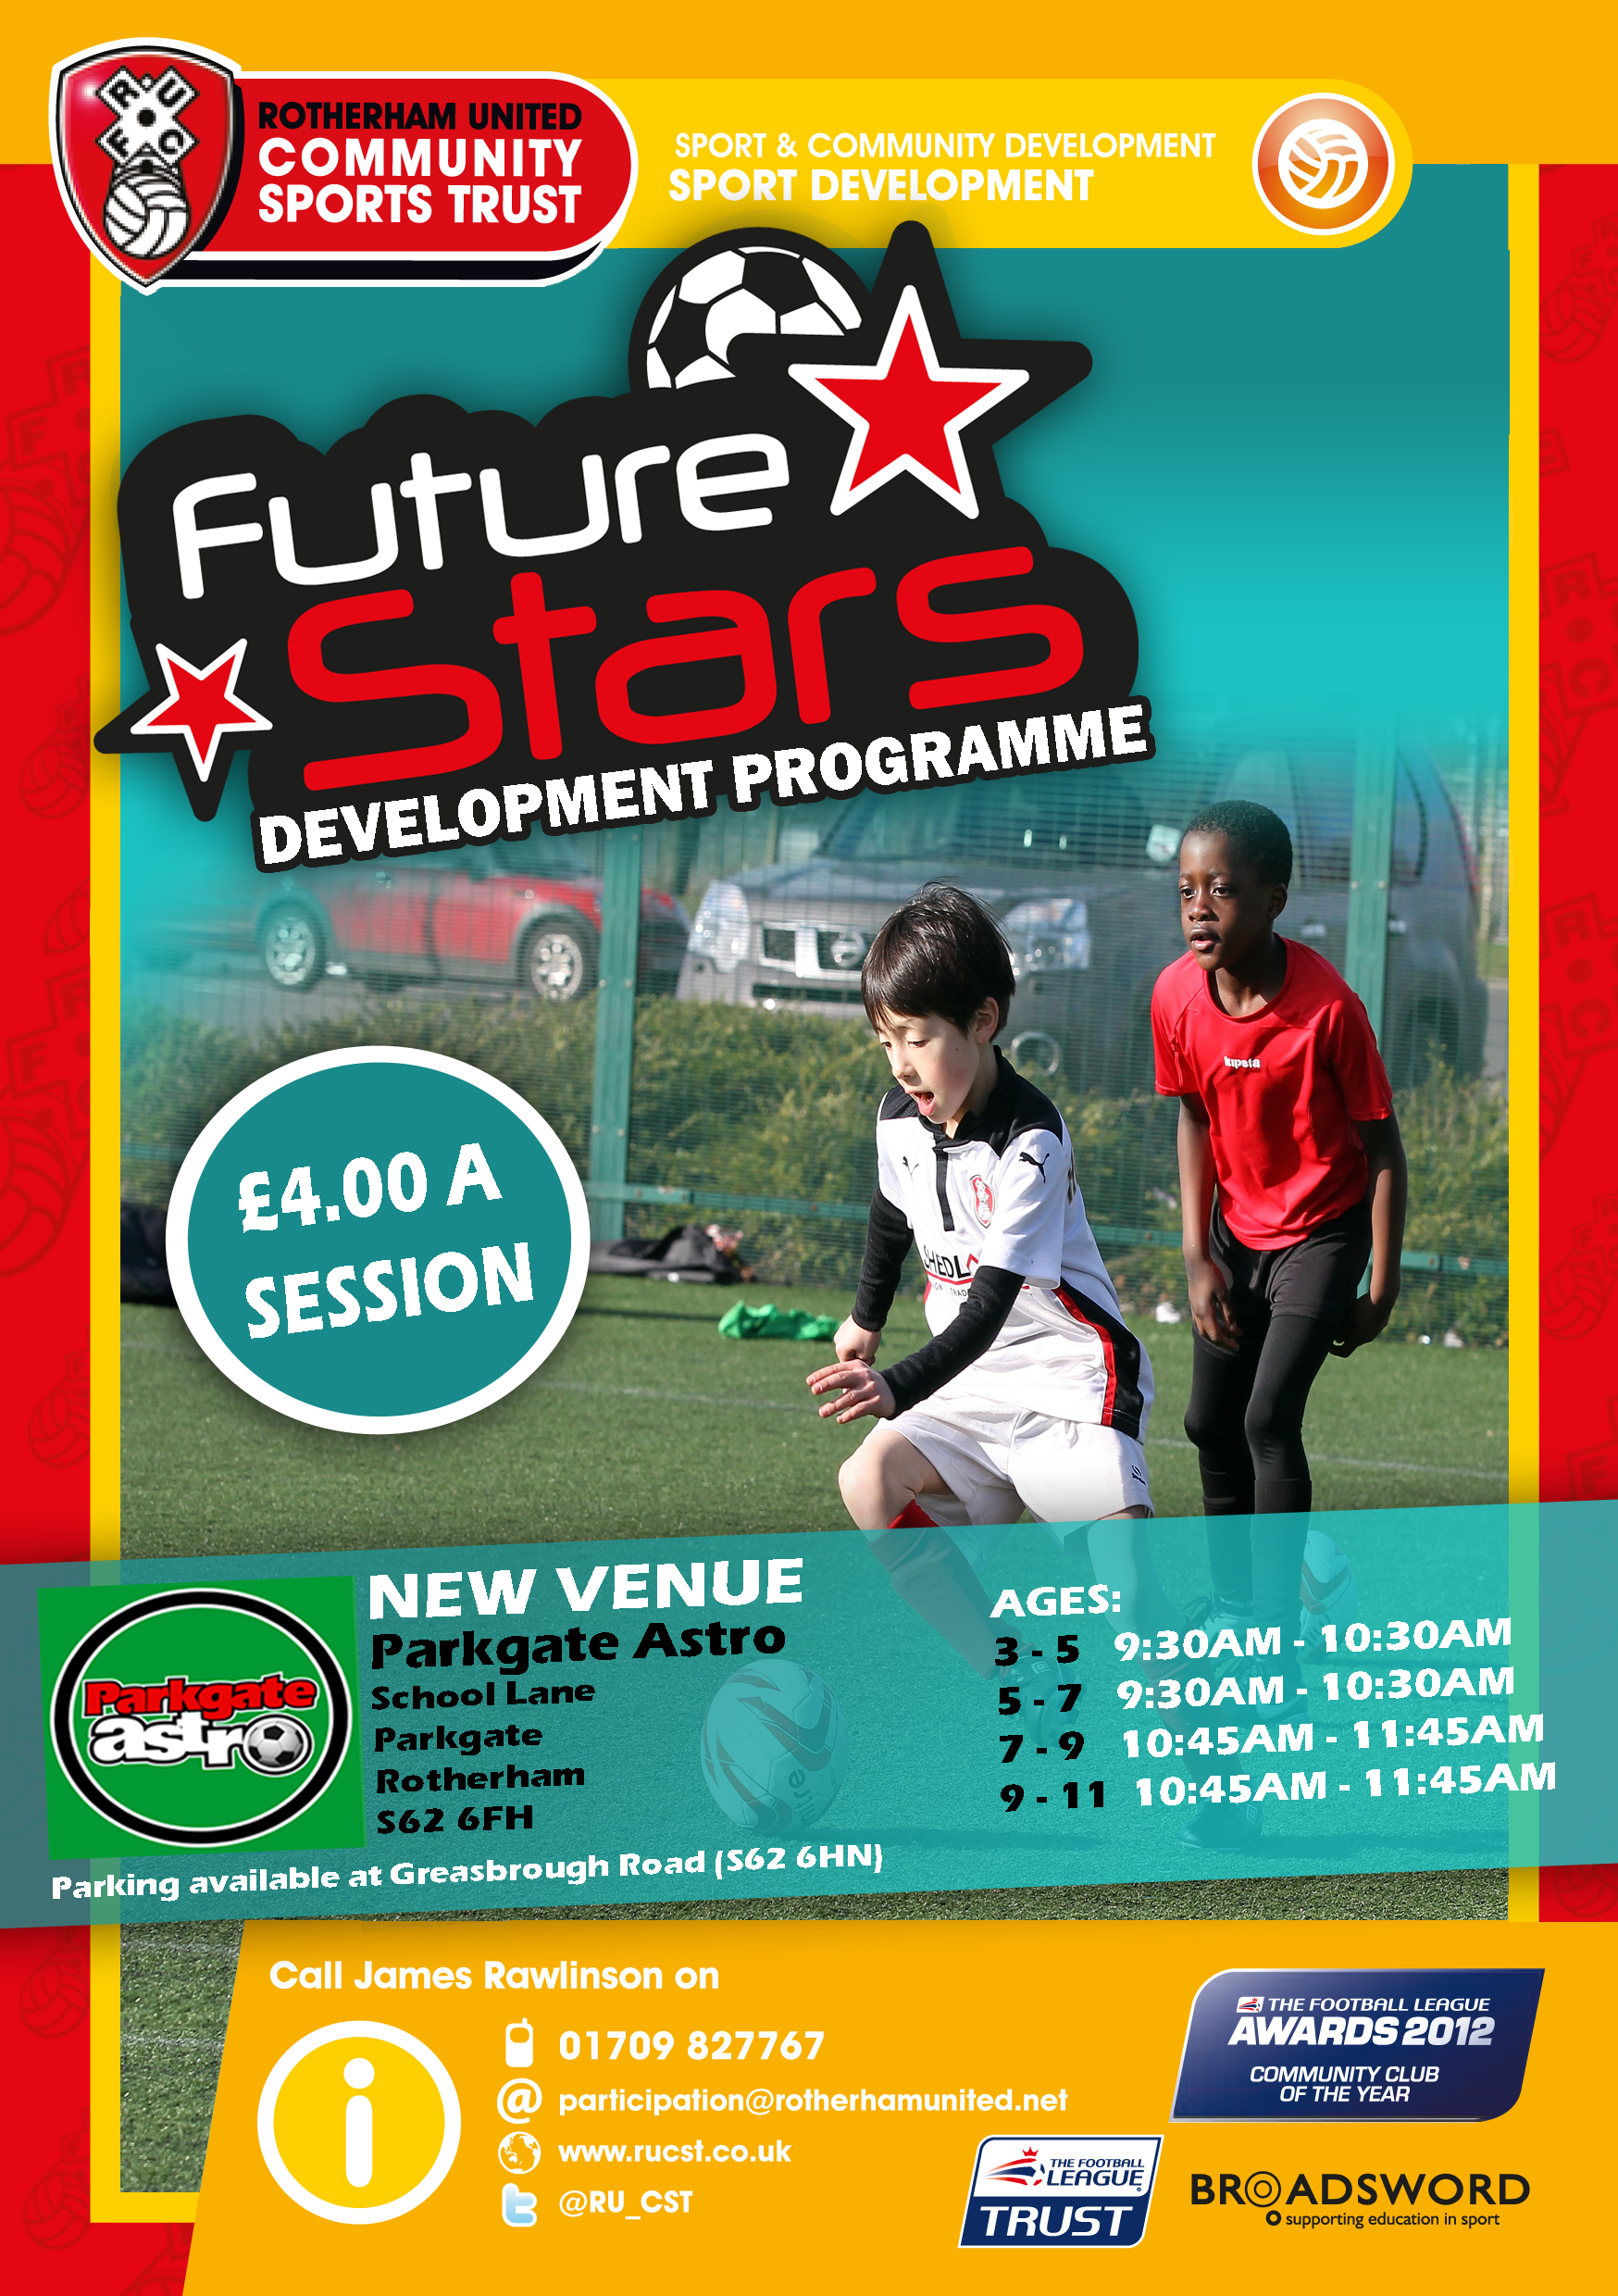 FUURE STARS DEVELOPMENT copy